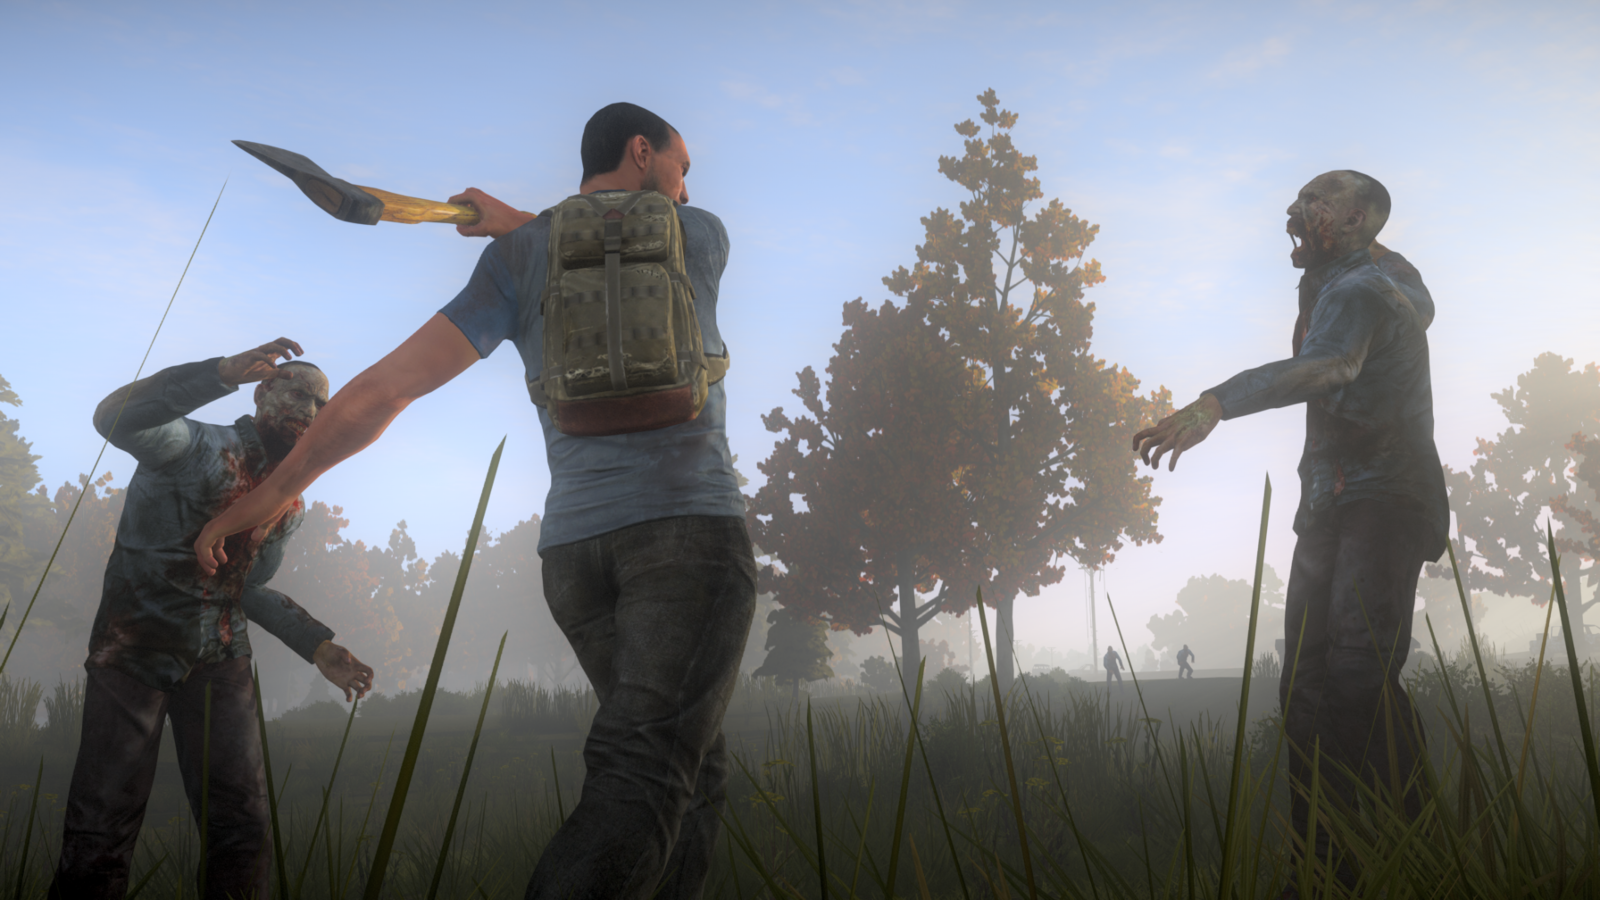 H1Z1 developers discuss Air Drops and future updates